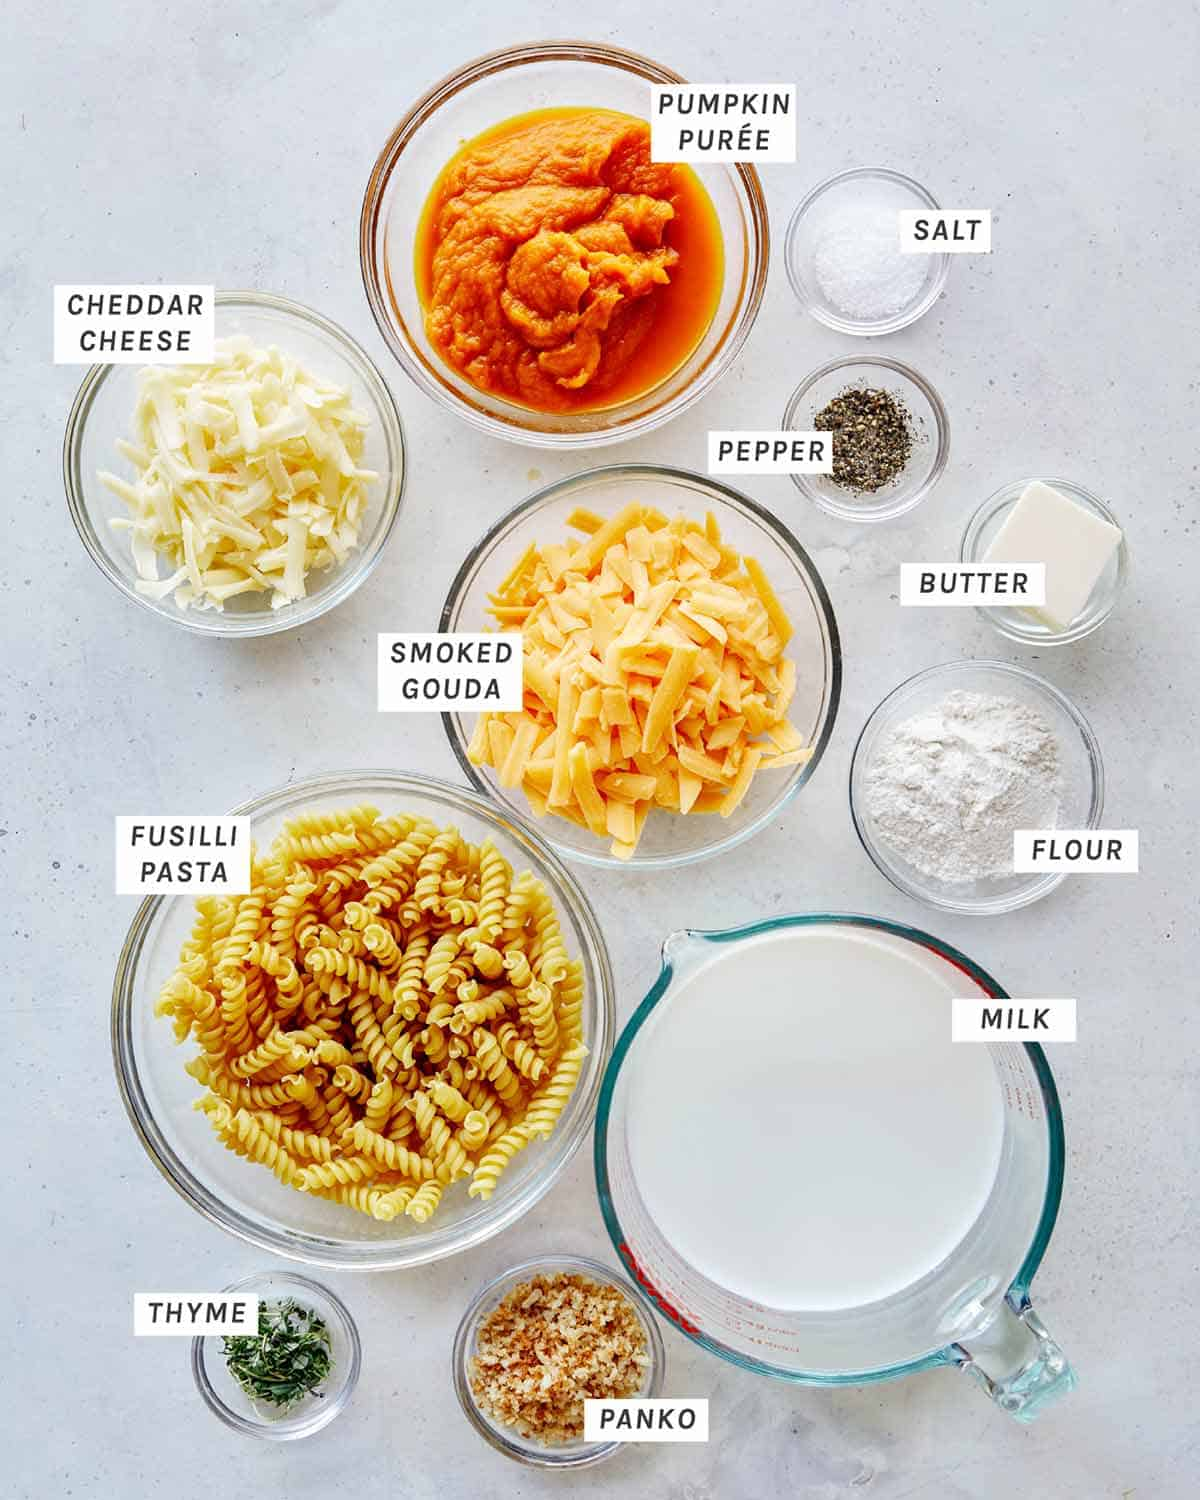 Ingredients for Pumpkin Mac and Cheese all laid out on a kitchen counter.